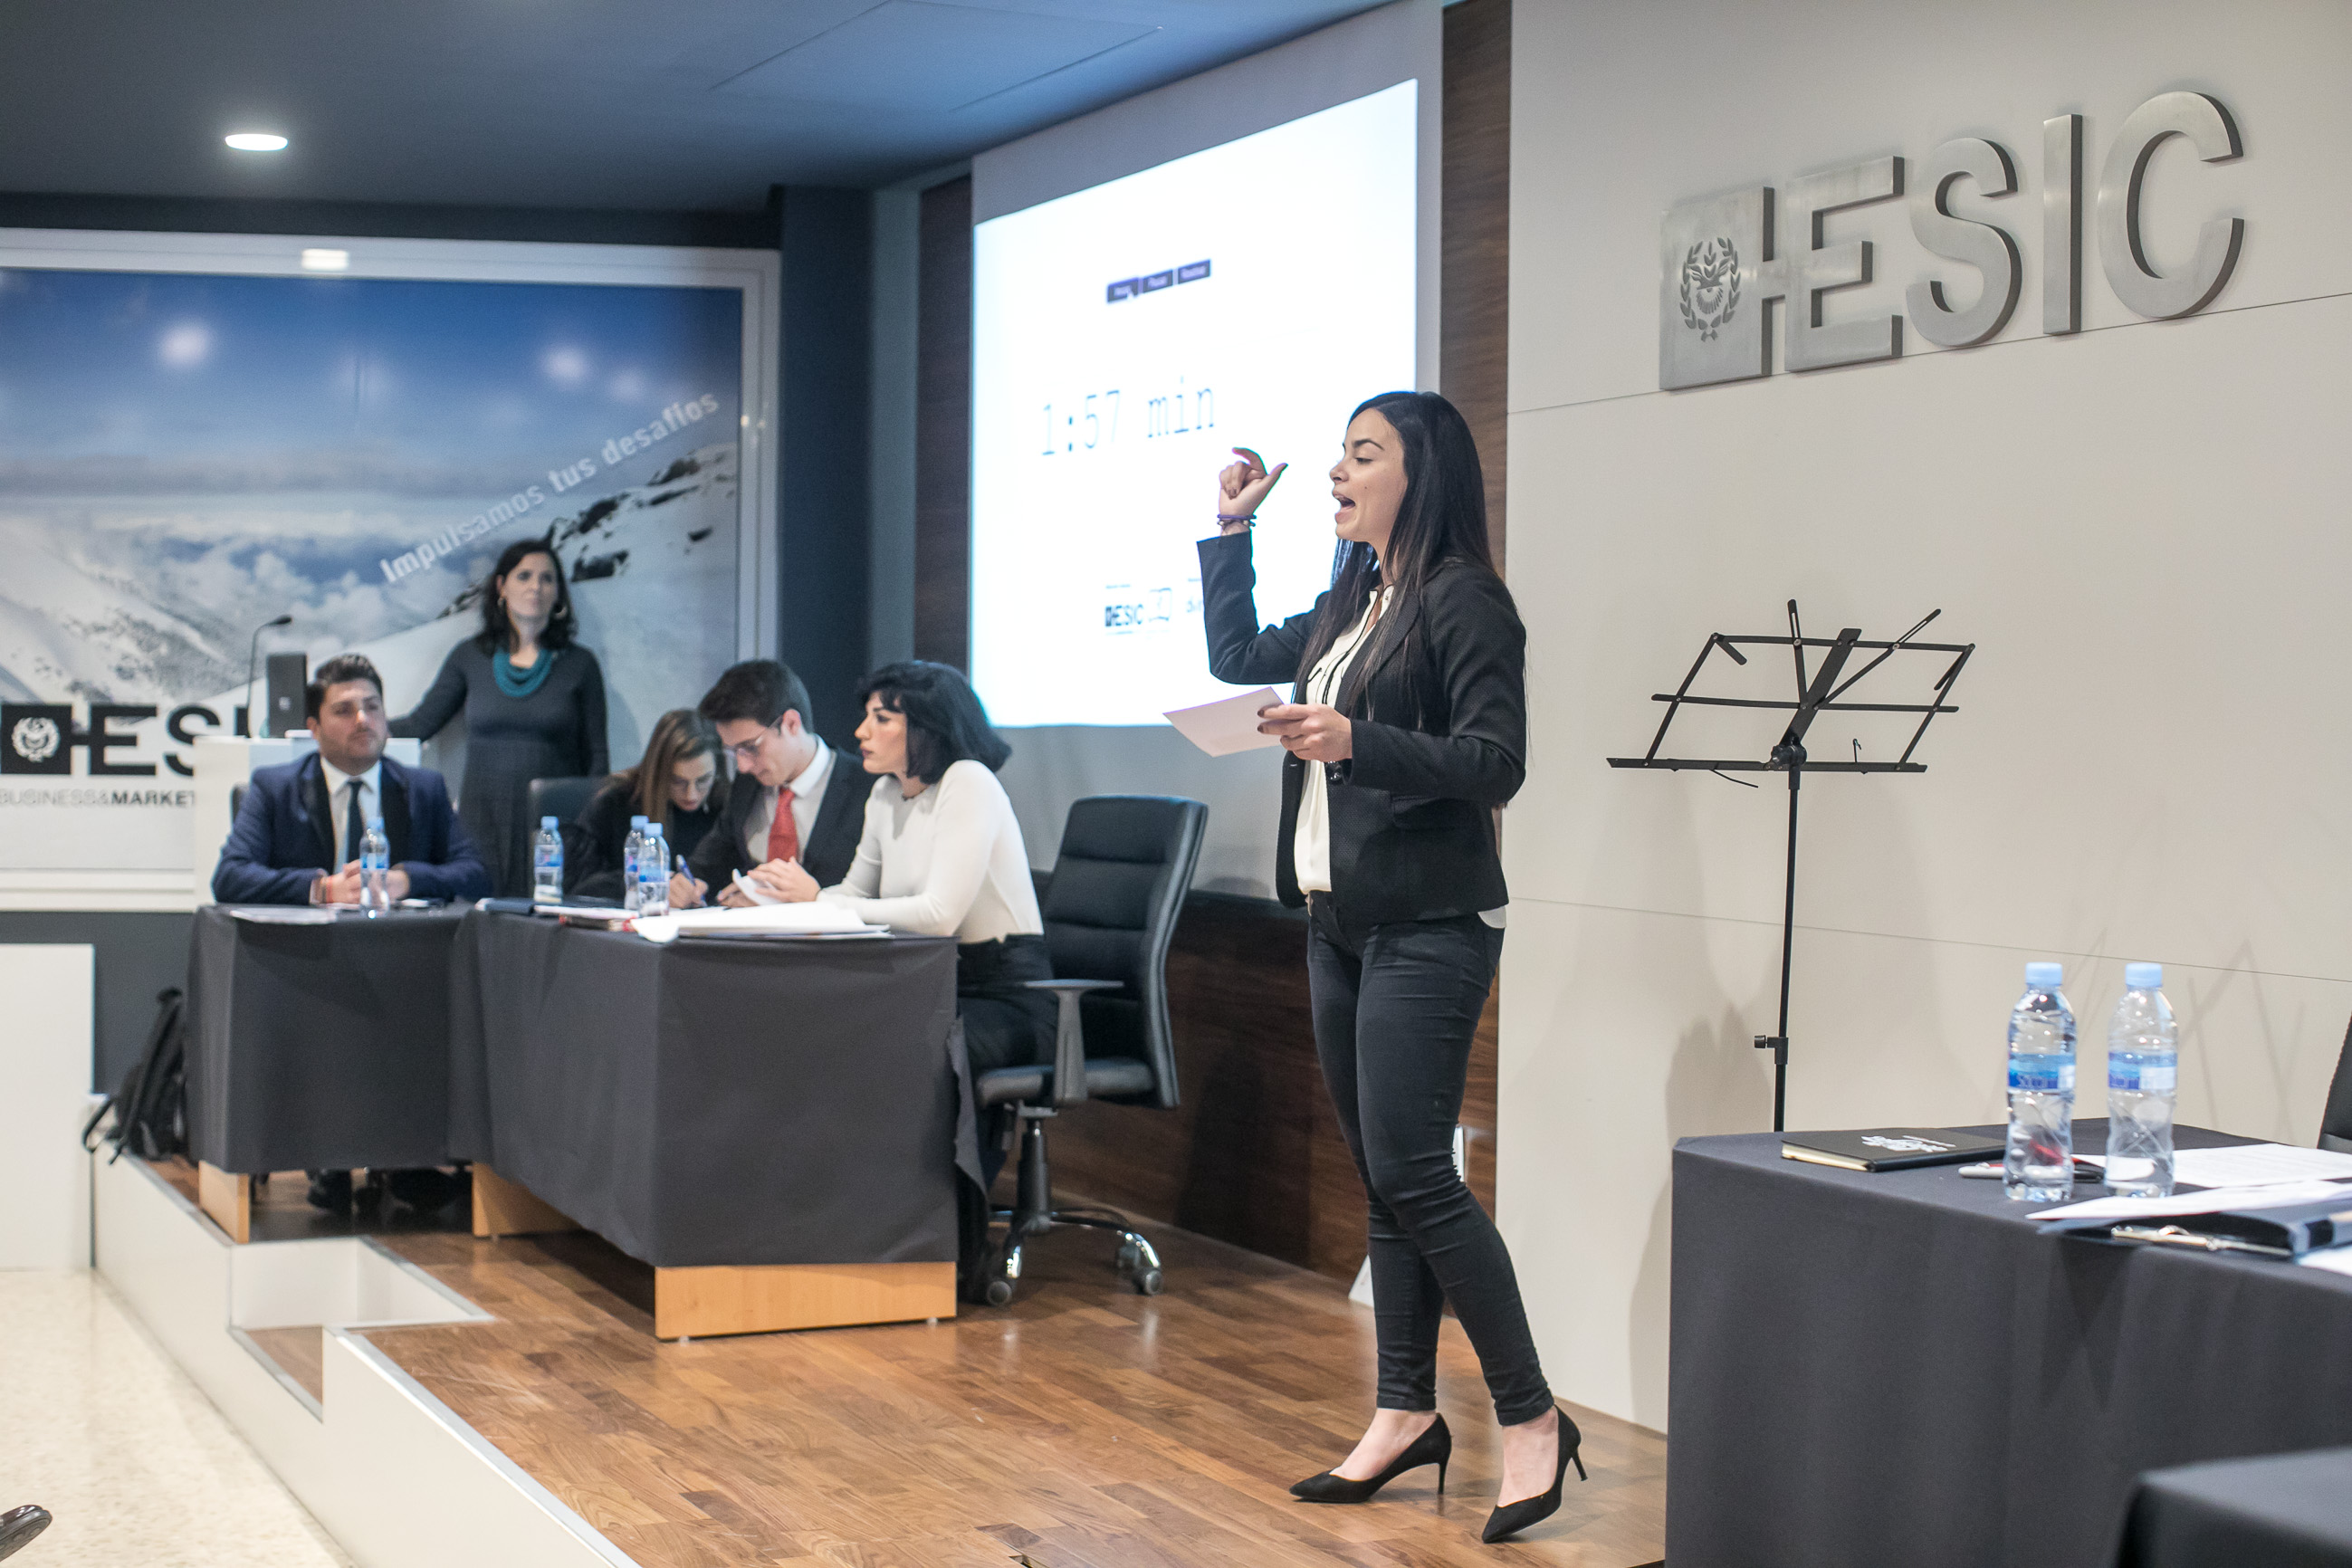 Final III Torneo de Debate Grado-Postgrado